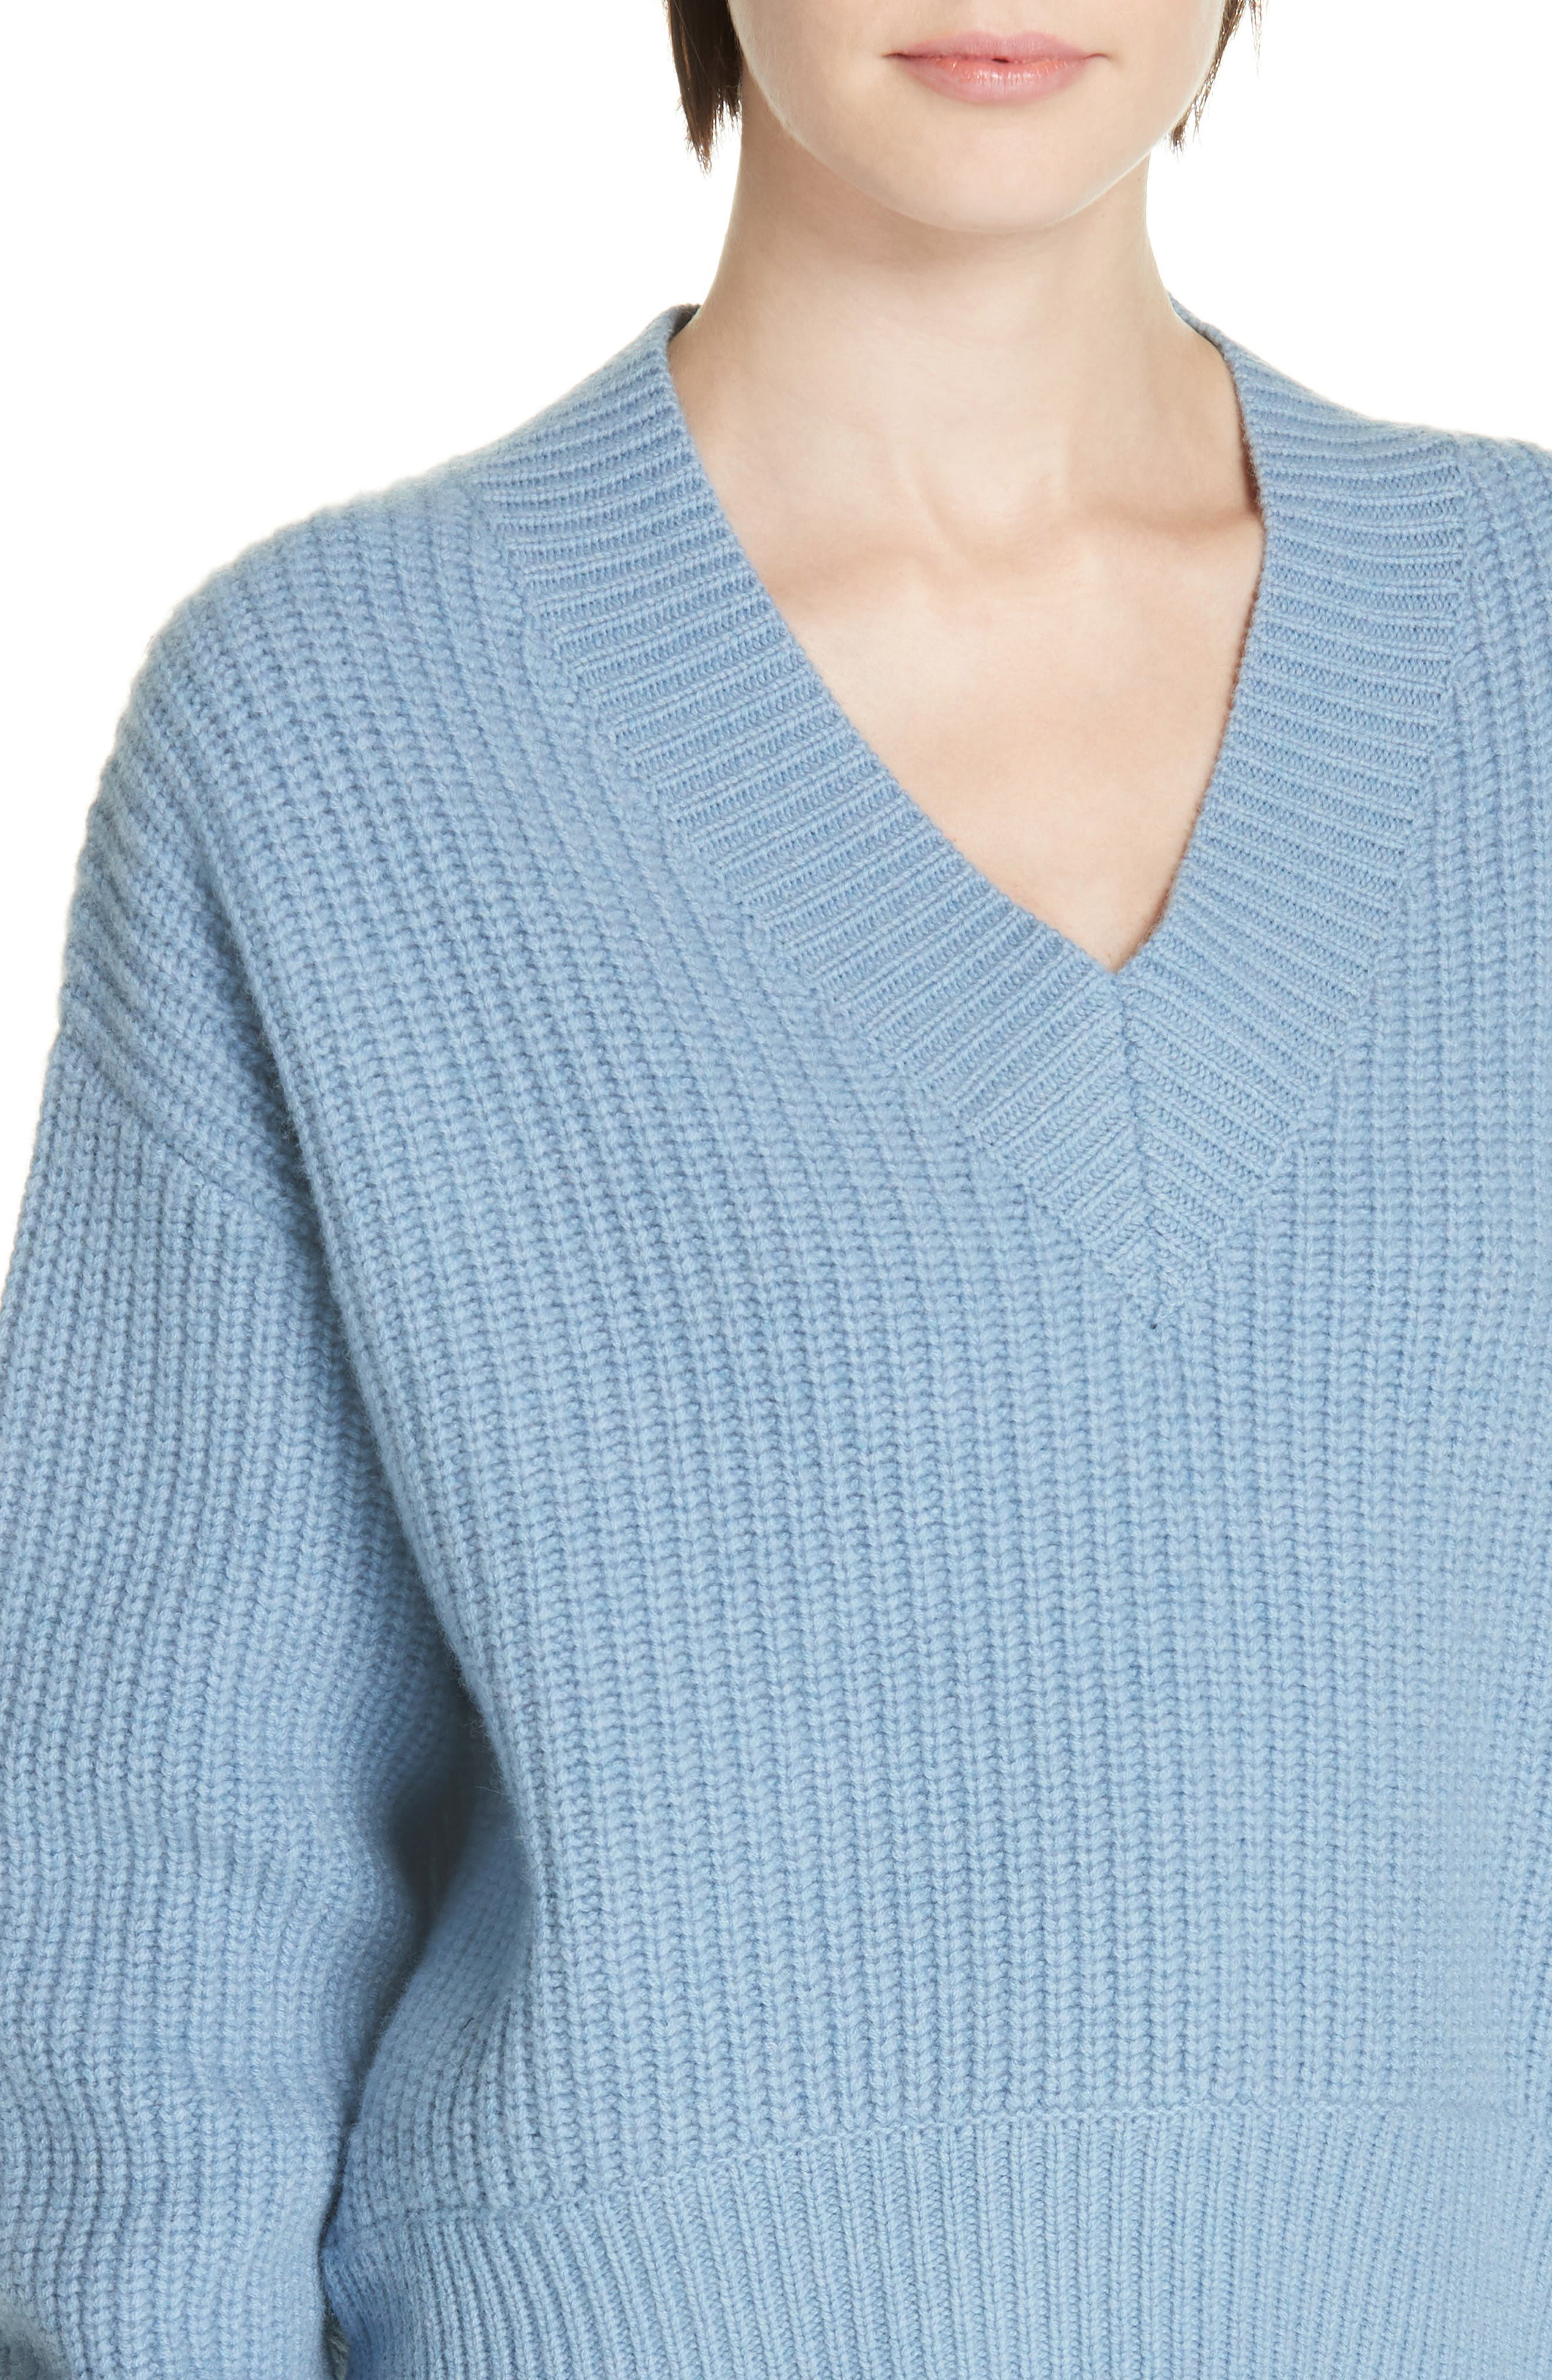 V-Neck Wool & Cashmere Sweater,                             Alternate thumbnail 4, color,                             BLUE COLONY